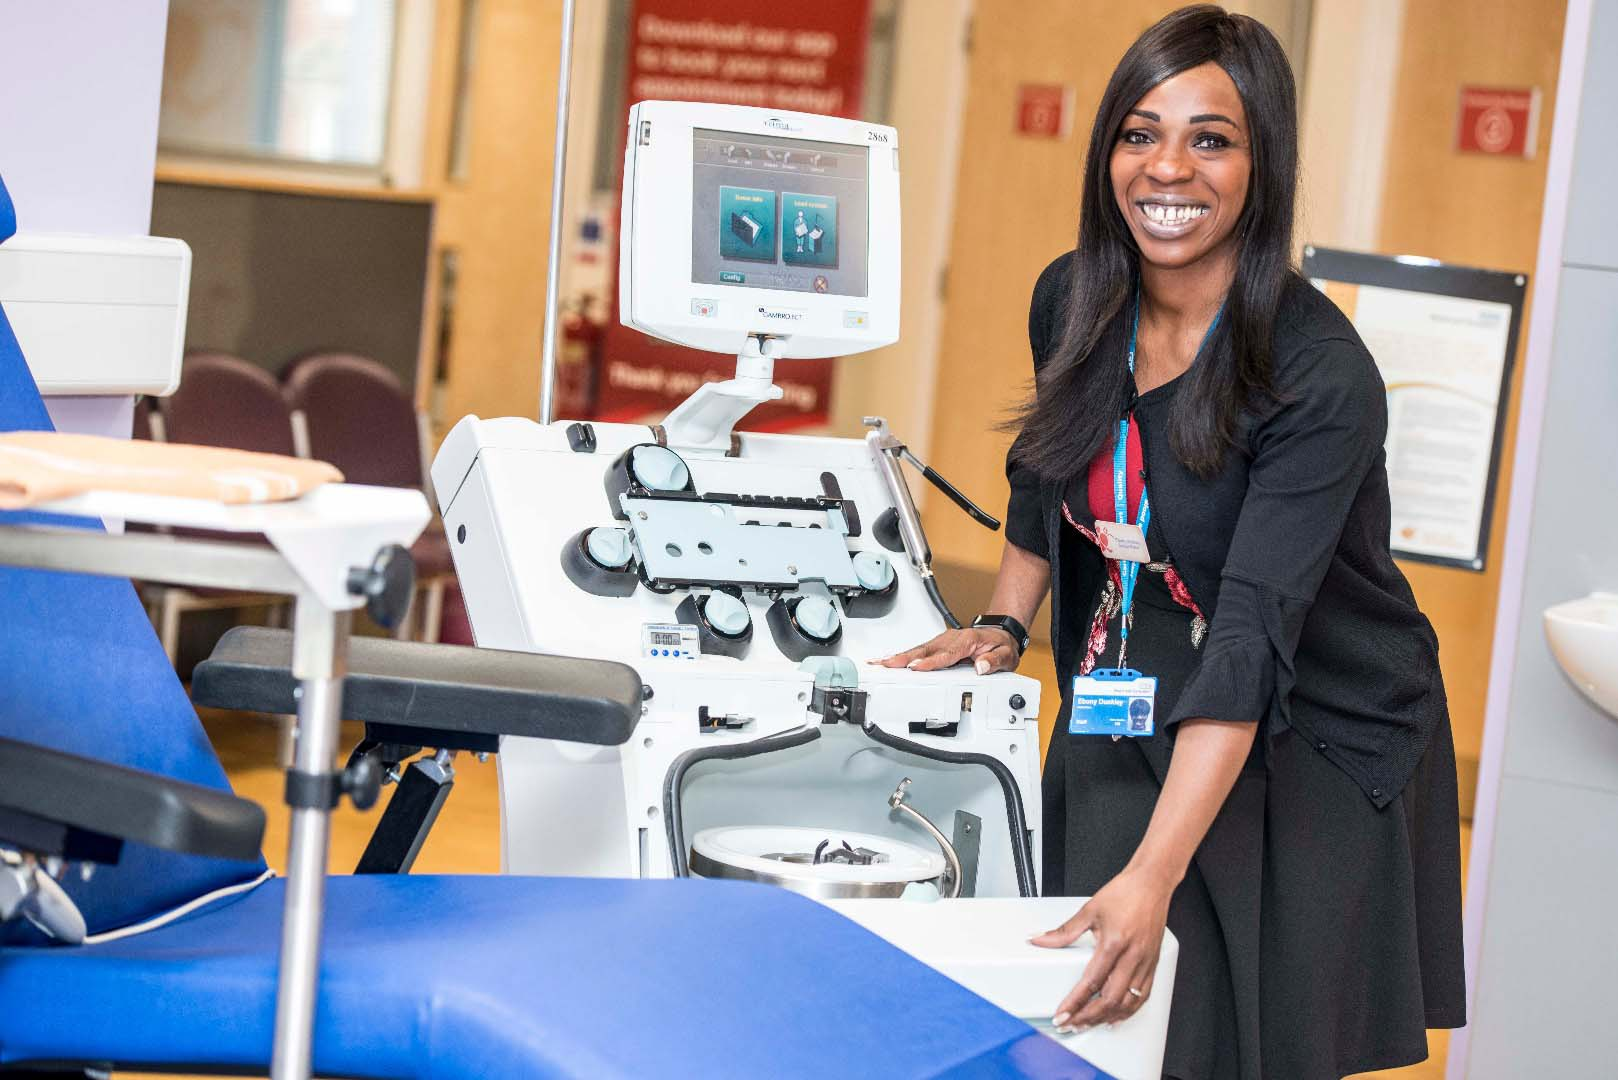 Senior Sister Ebony Dunkley at the Nottingham Blood Donor Centre